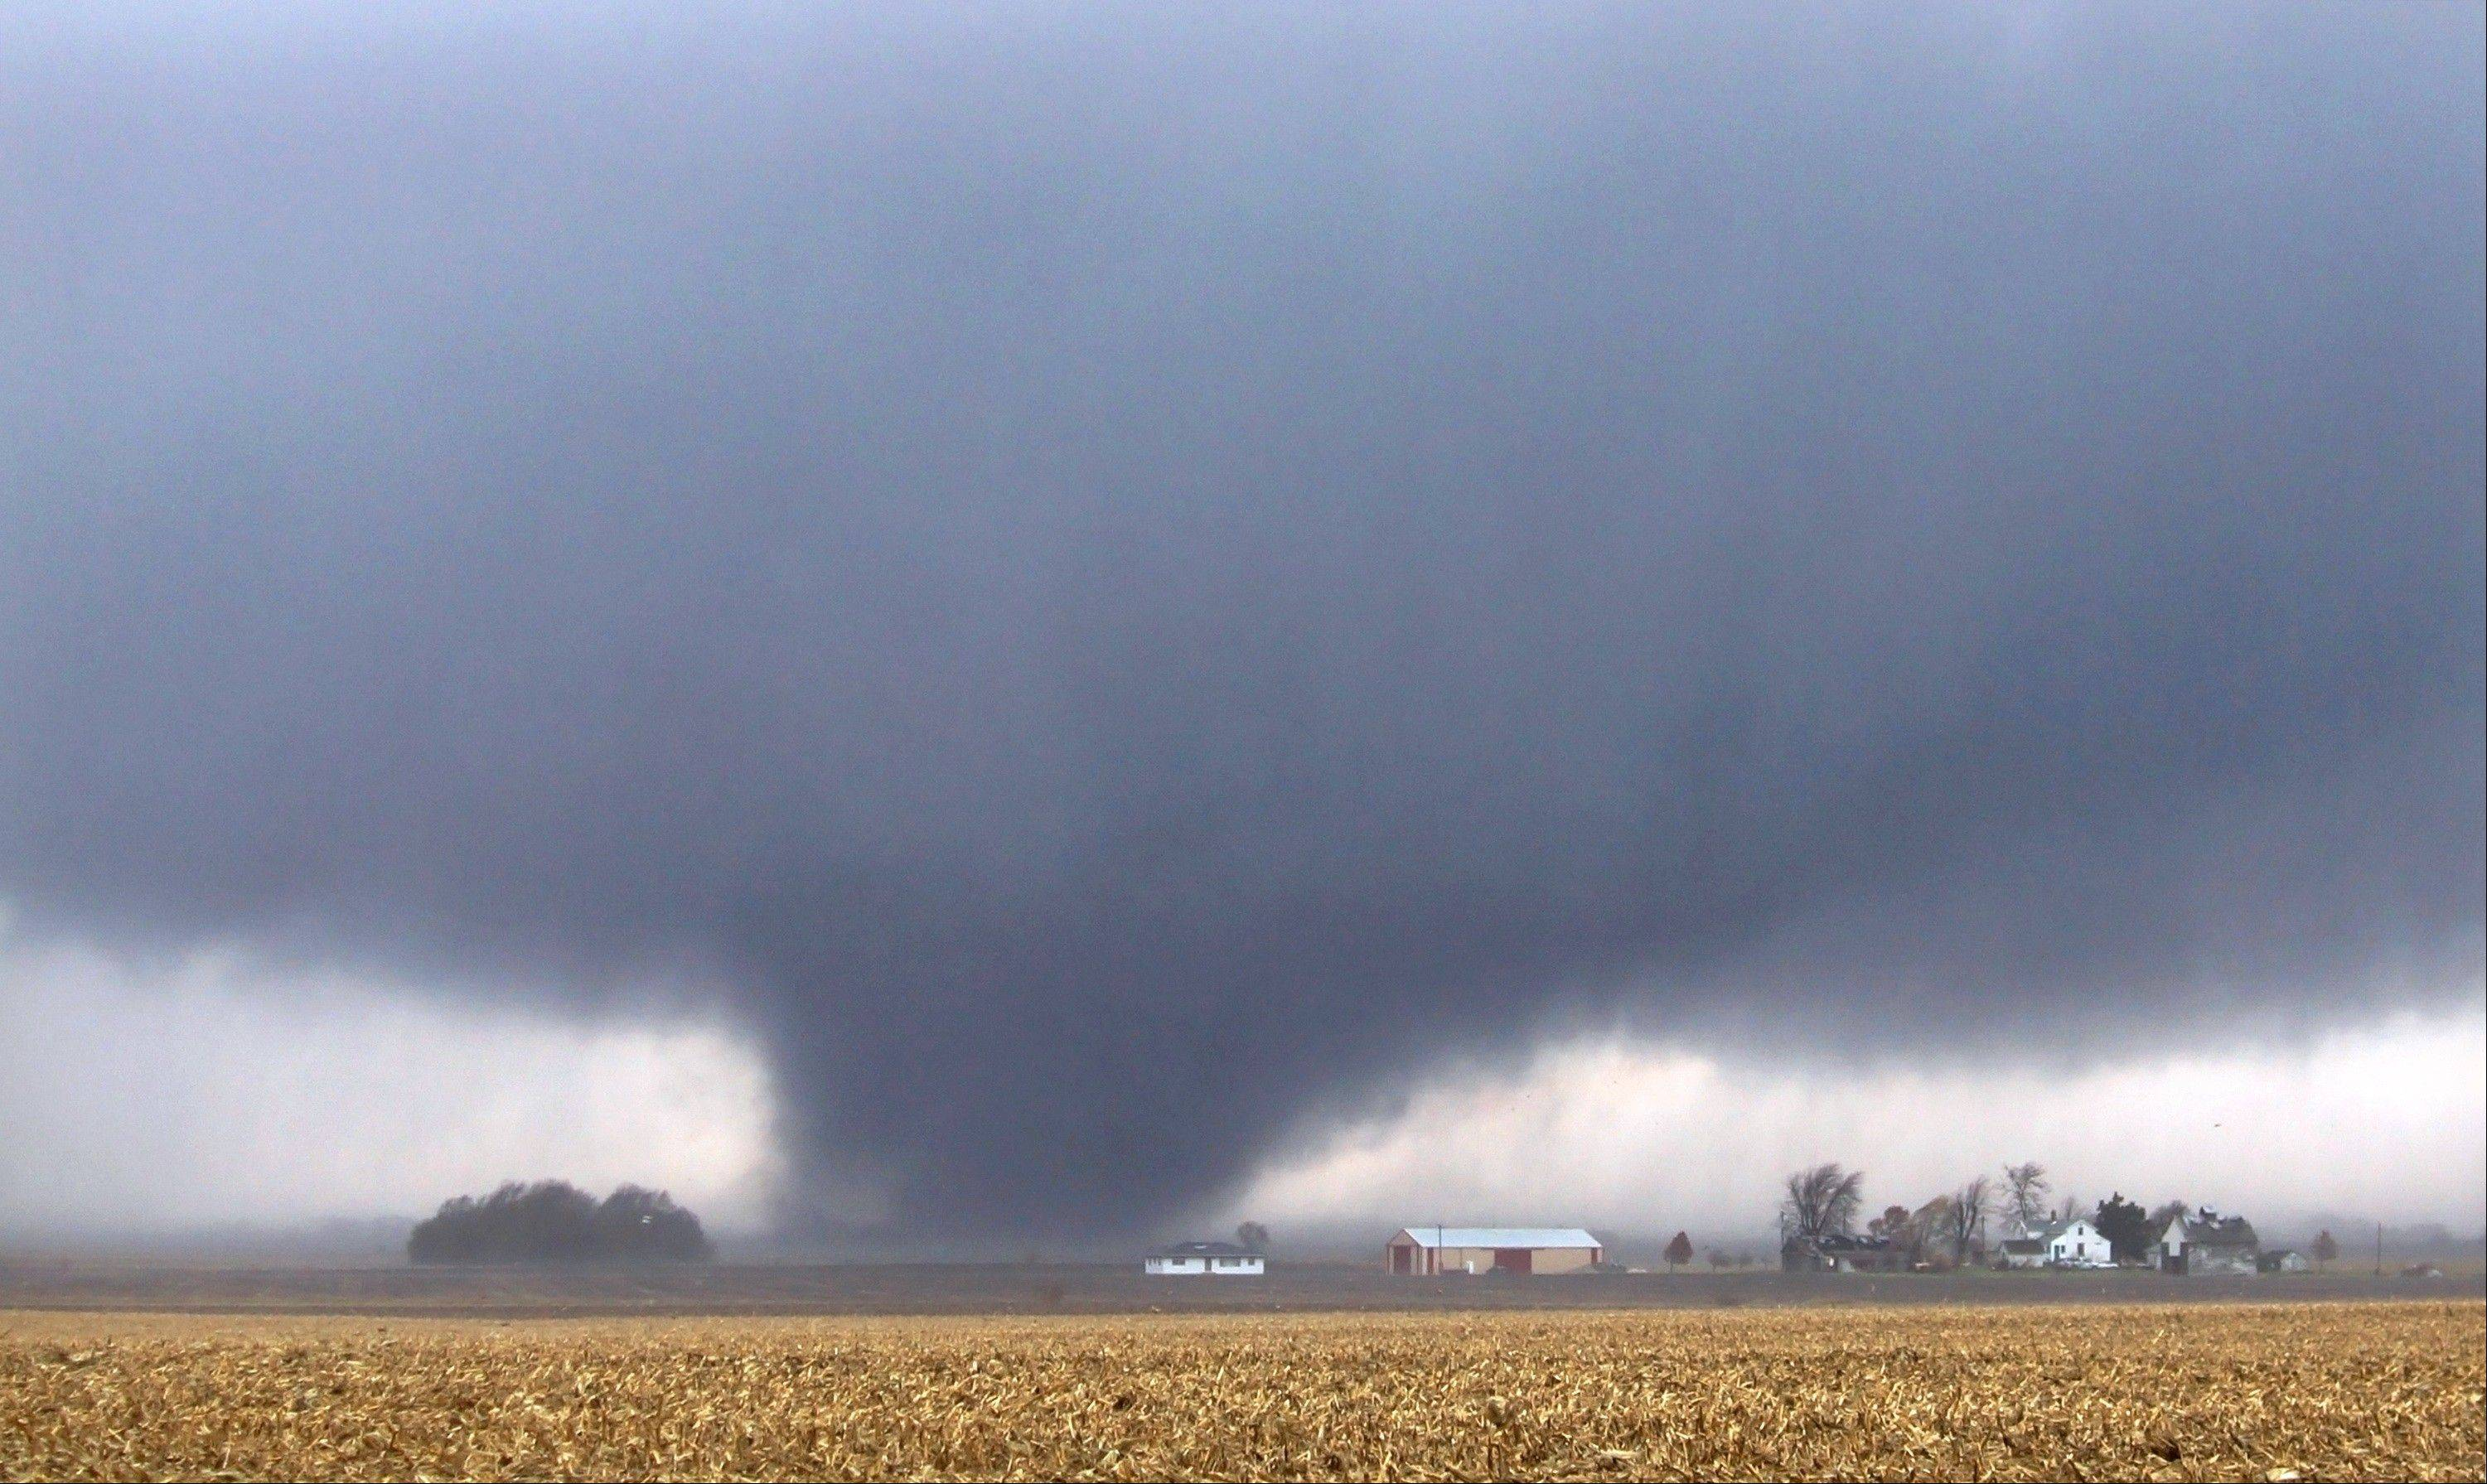 A tornado moves northeast Sunday, Nov. 17, 2013, two miles west of Flatville, Ill. The tornado damaged many farm buildings and homes on its way to Gifford, Ill., where scores of houses were devastated.